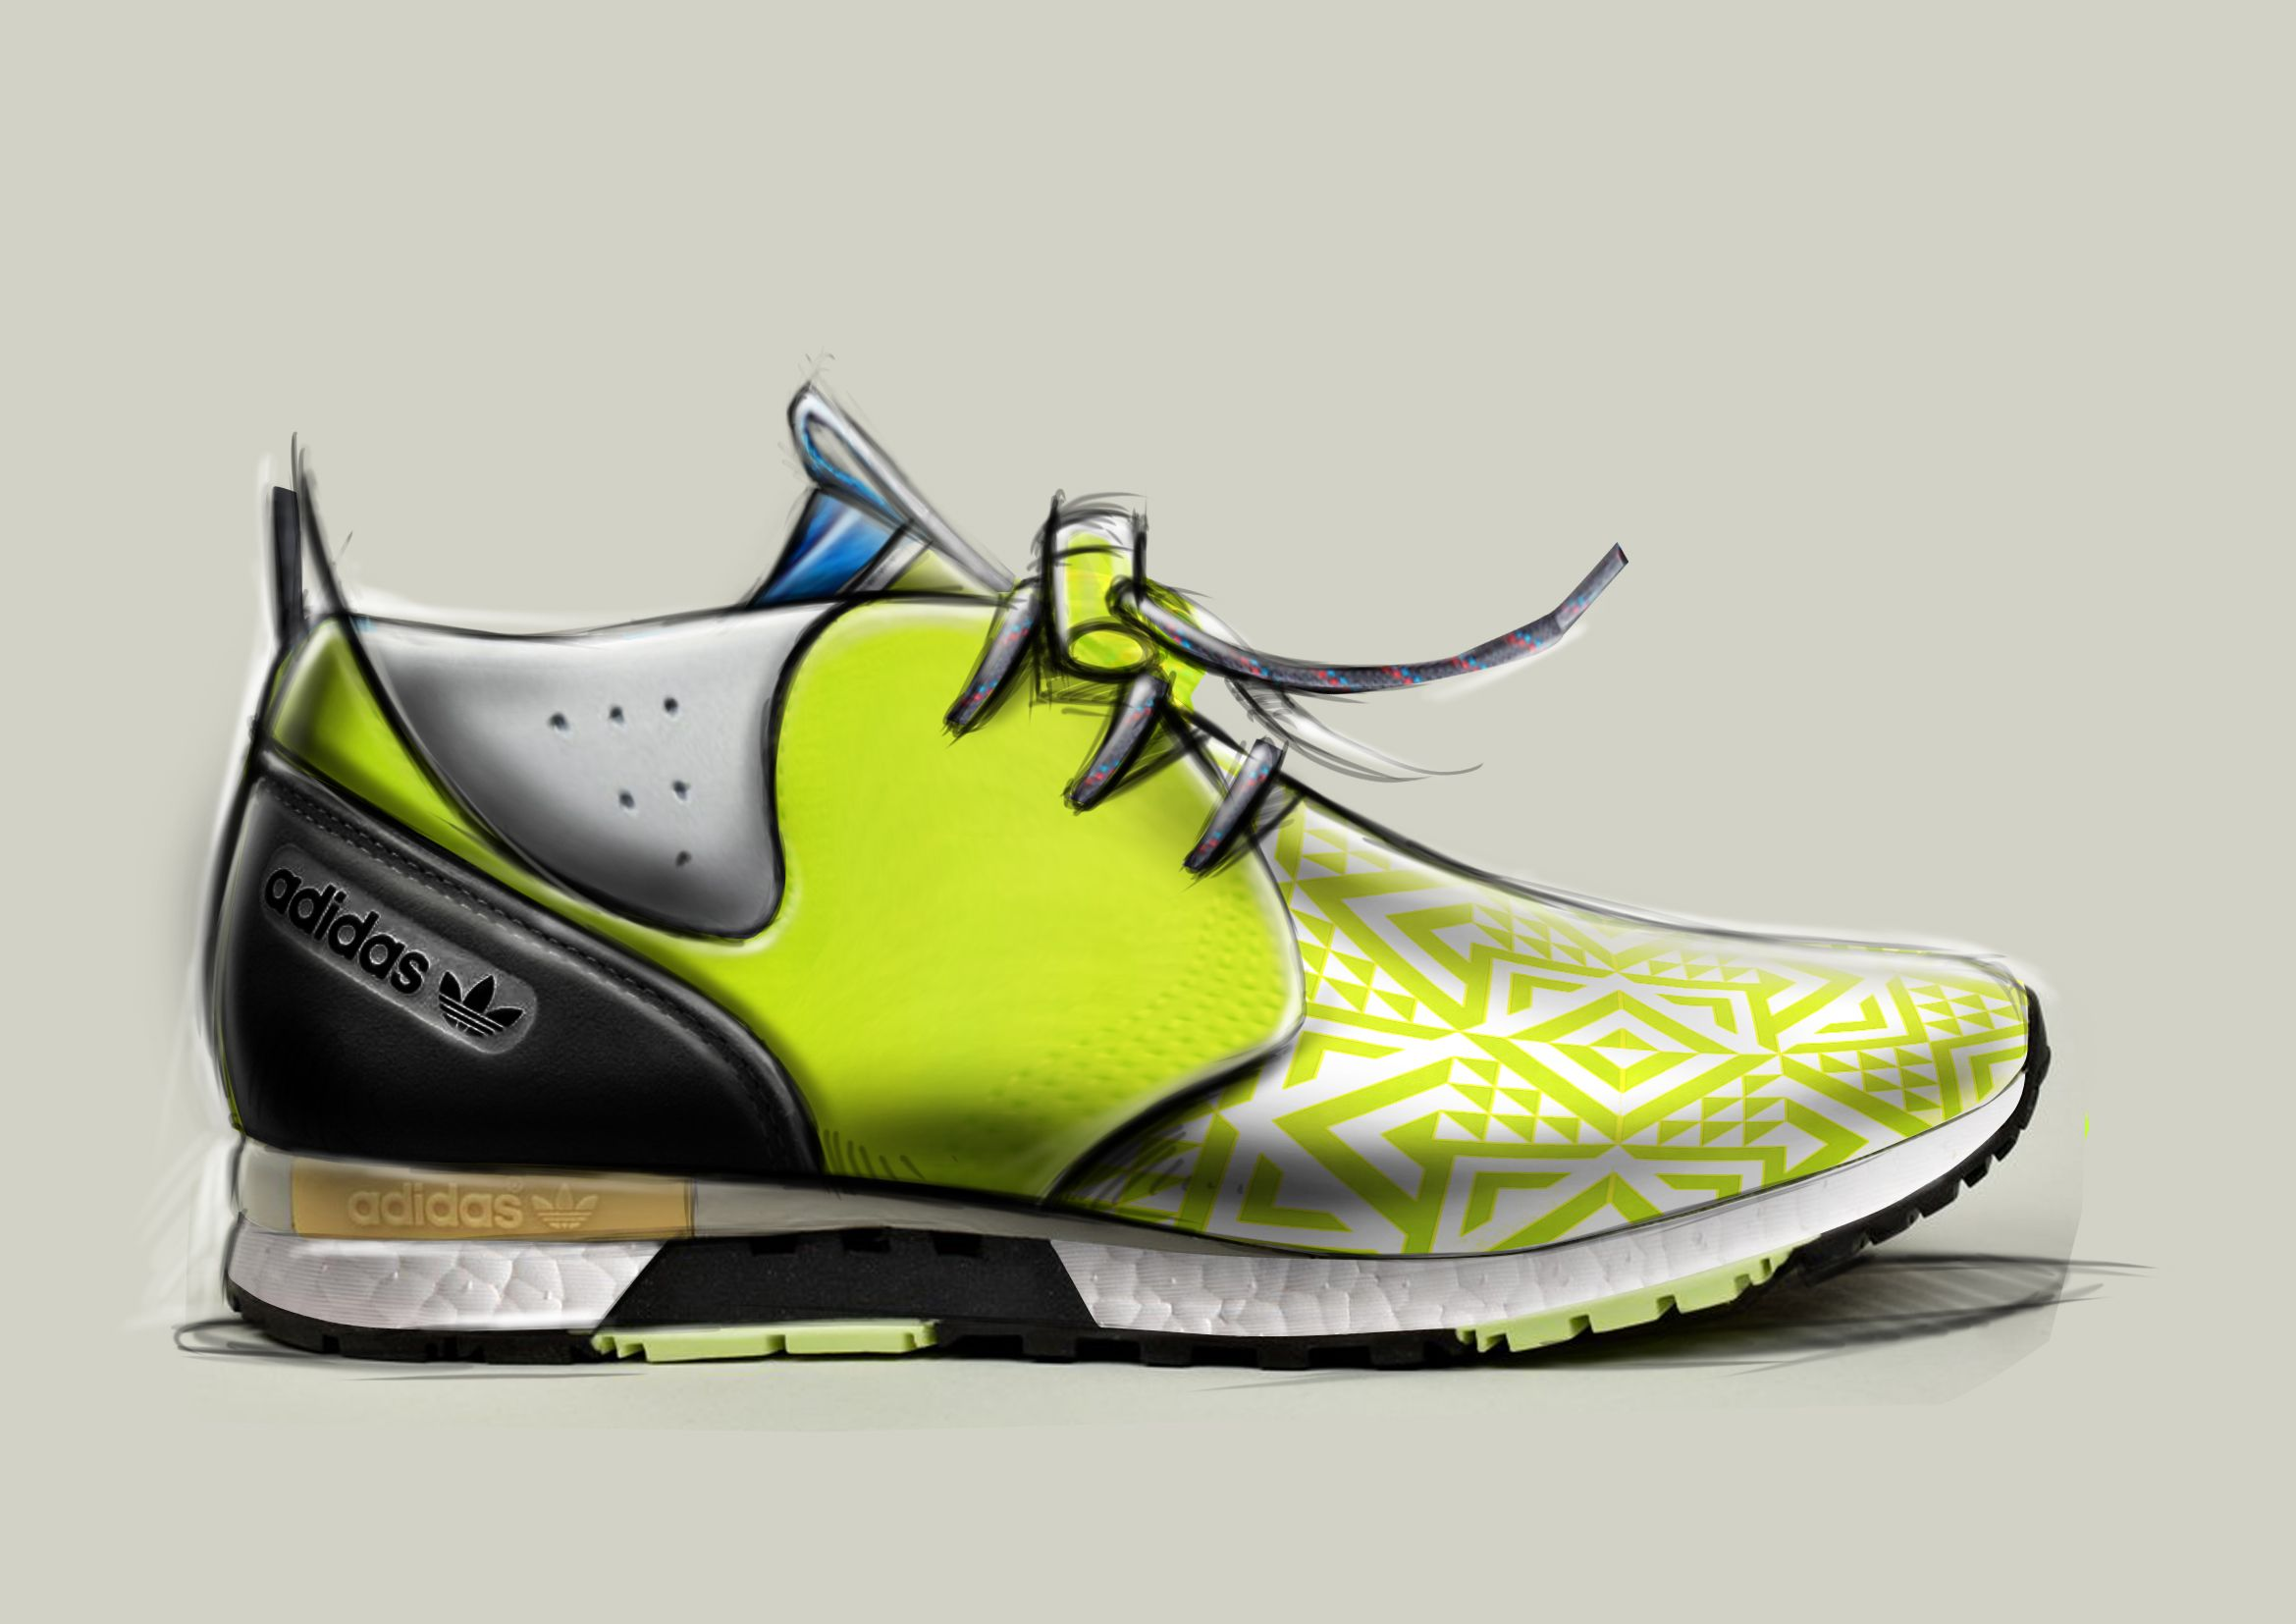 Sneaker sketches on Behance | Shoes Design Inspiration | Pinterest |  Sketches, Behance and Design inspiration